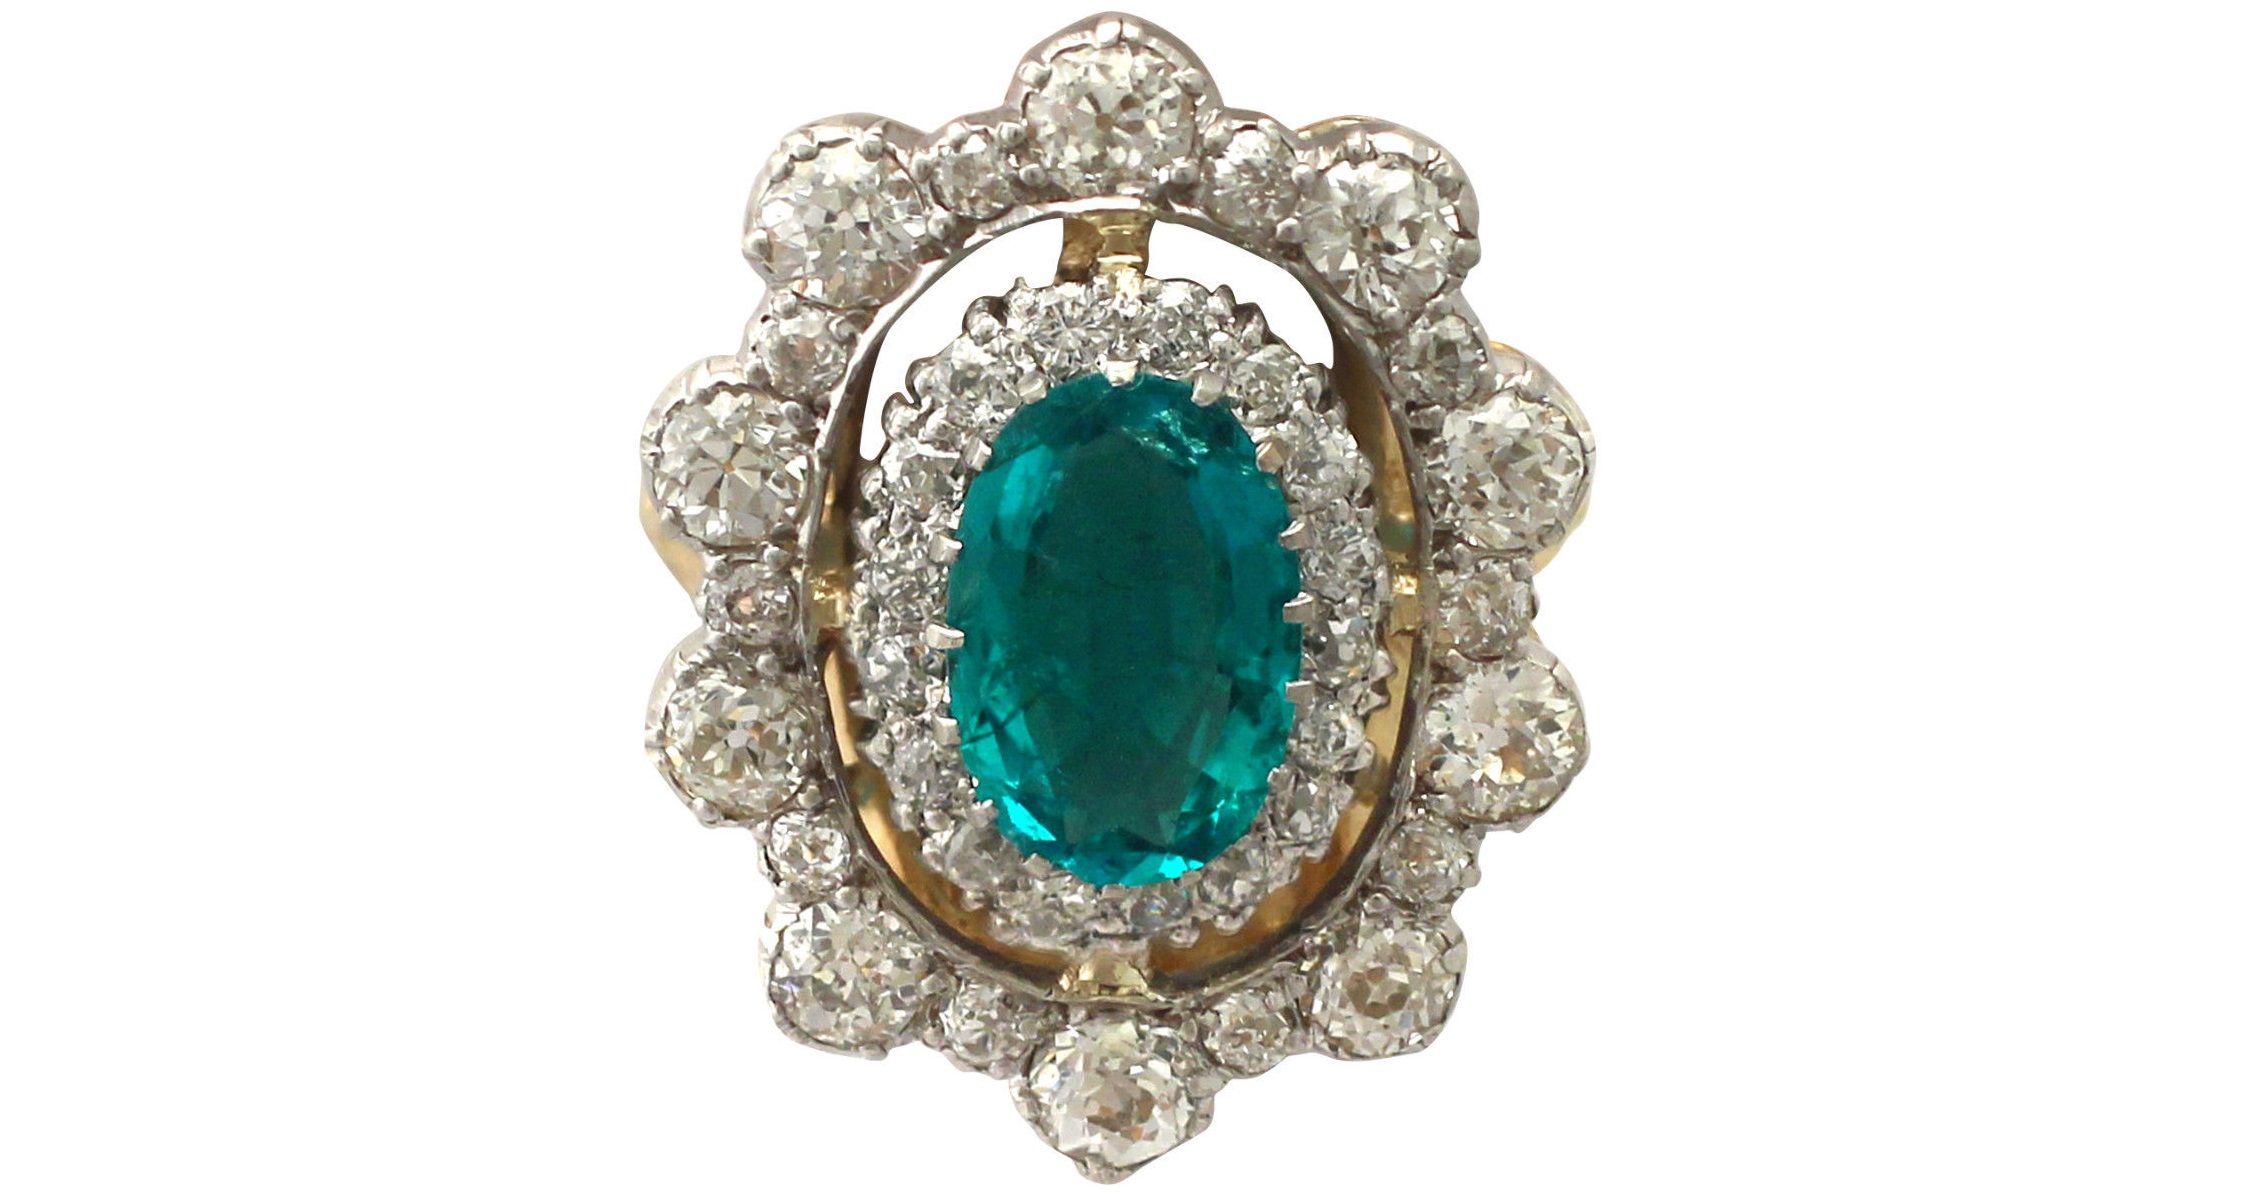 3.12 ct Emerald and 3.15 ct Diamond, 18 ct Yellow Gold Dress Ring - Antique Circa 1930